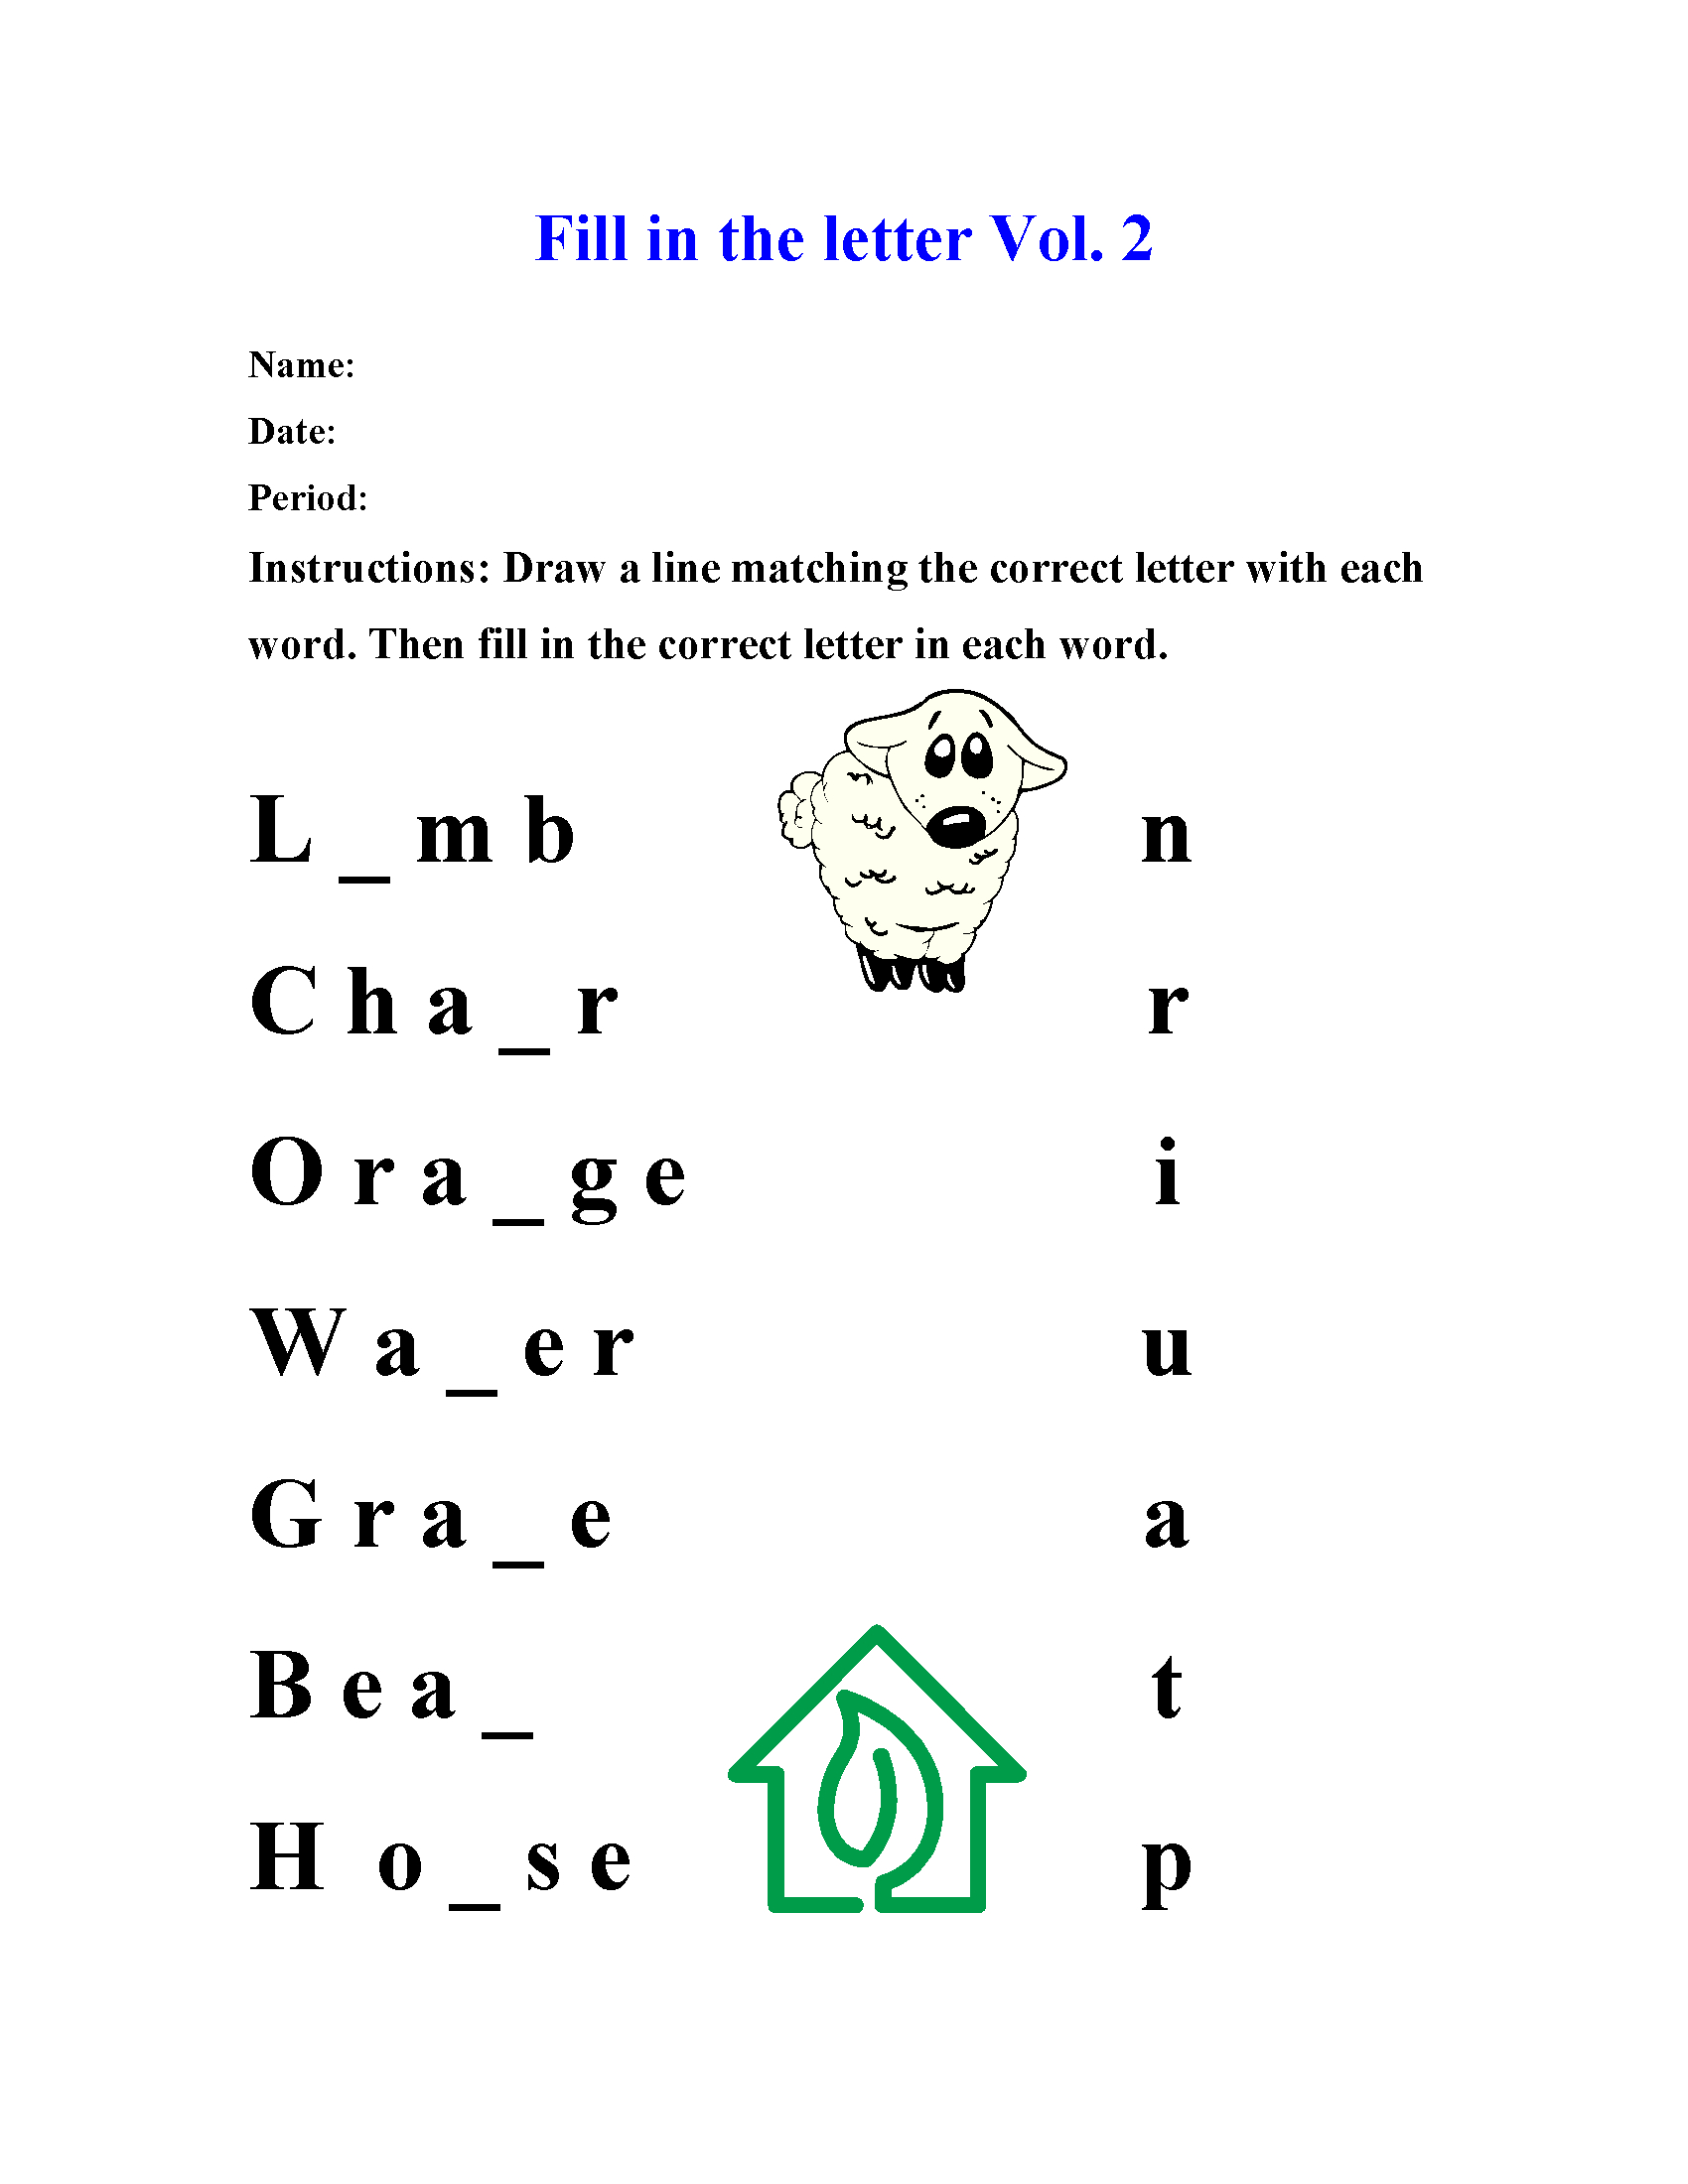 Spelling Worksheets | Fill-In The Letter Spelling Worksheets inside Alphabet Spelling Worksheets